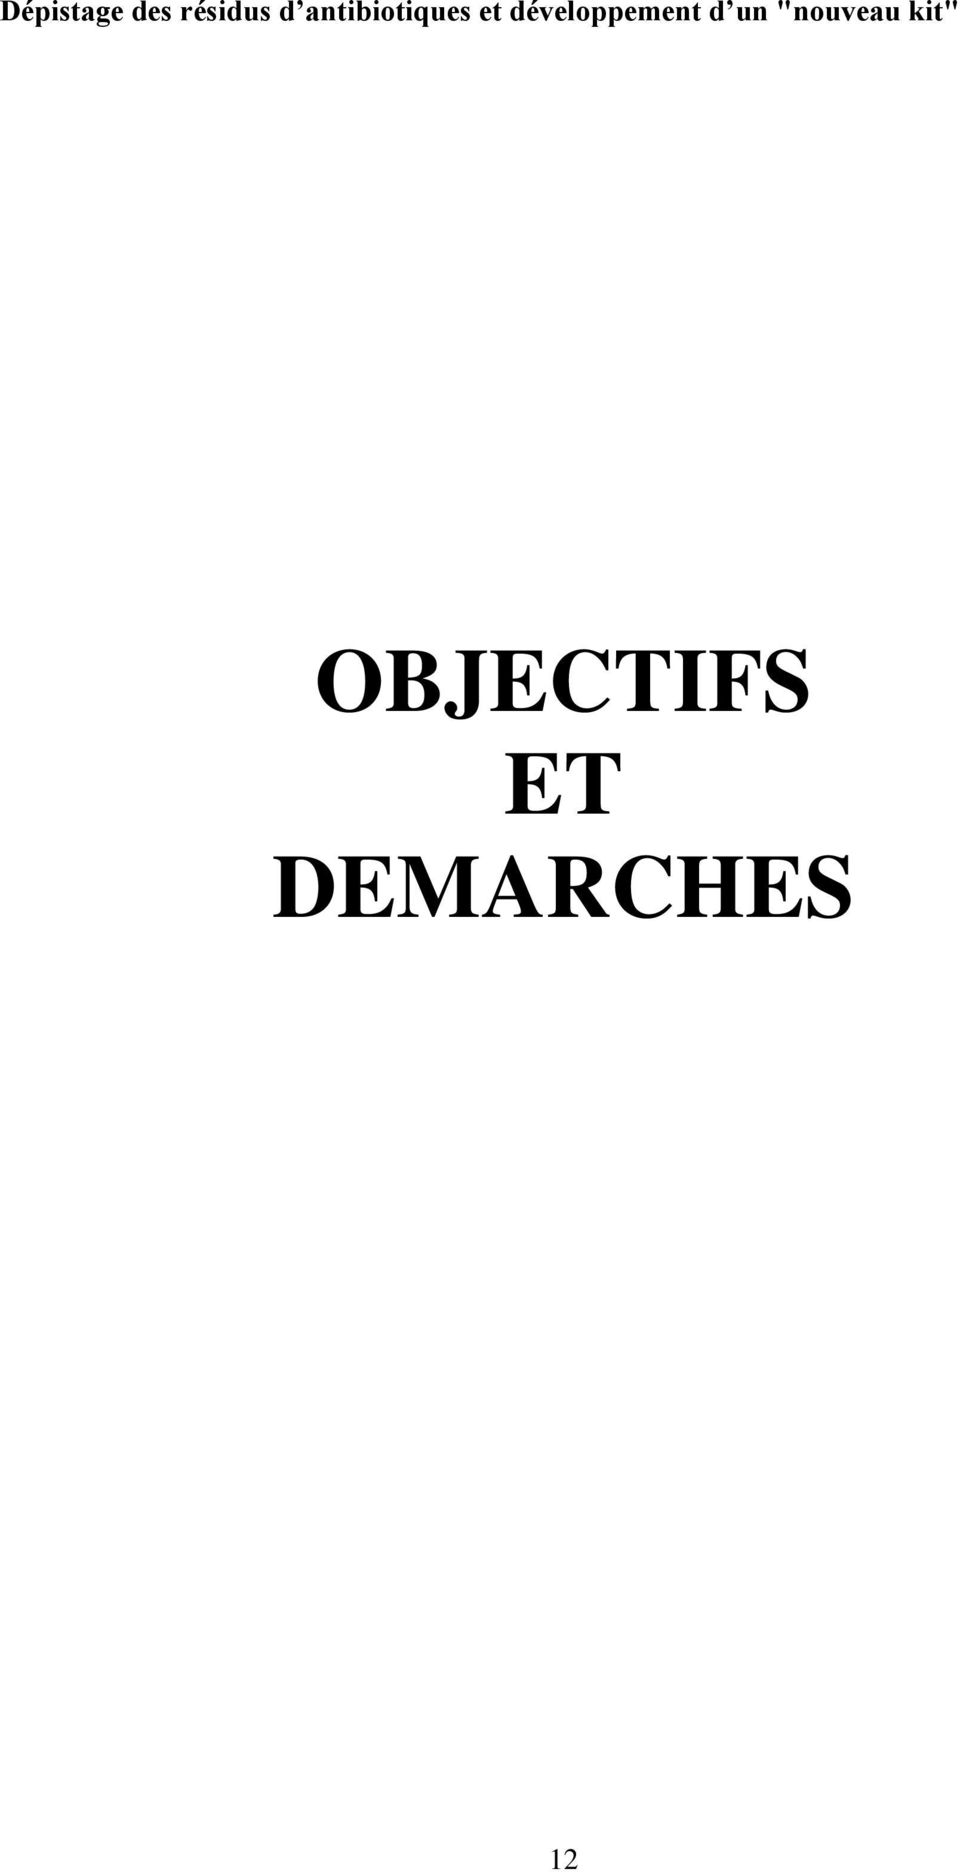 DEMARCHES